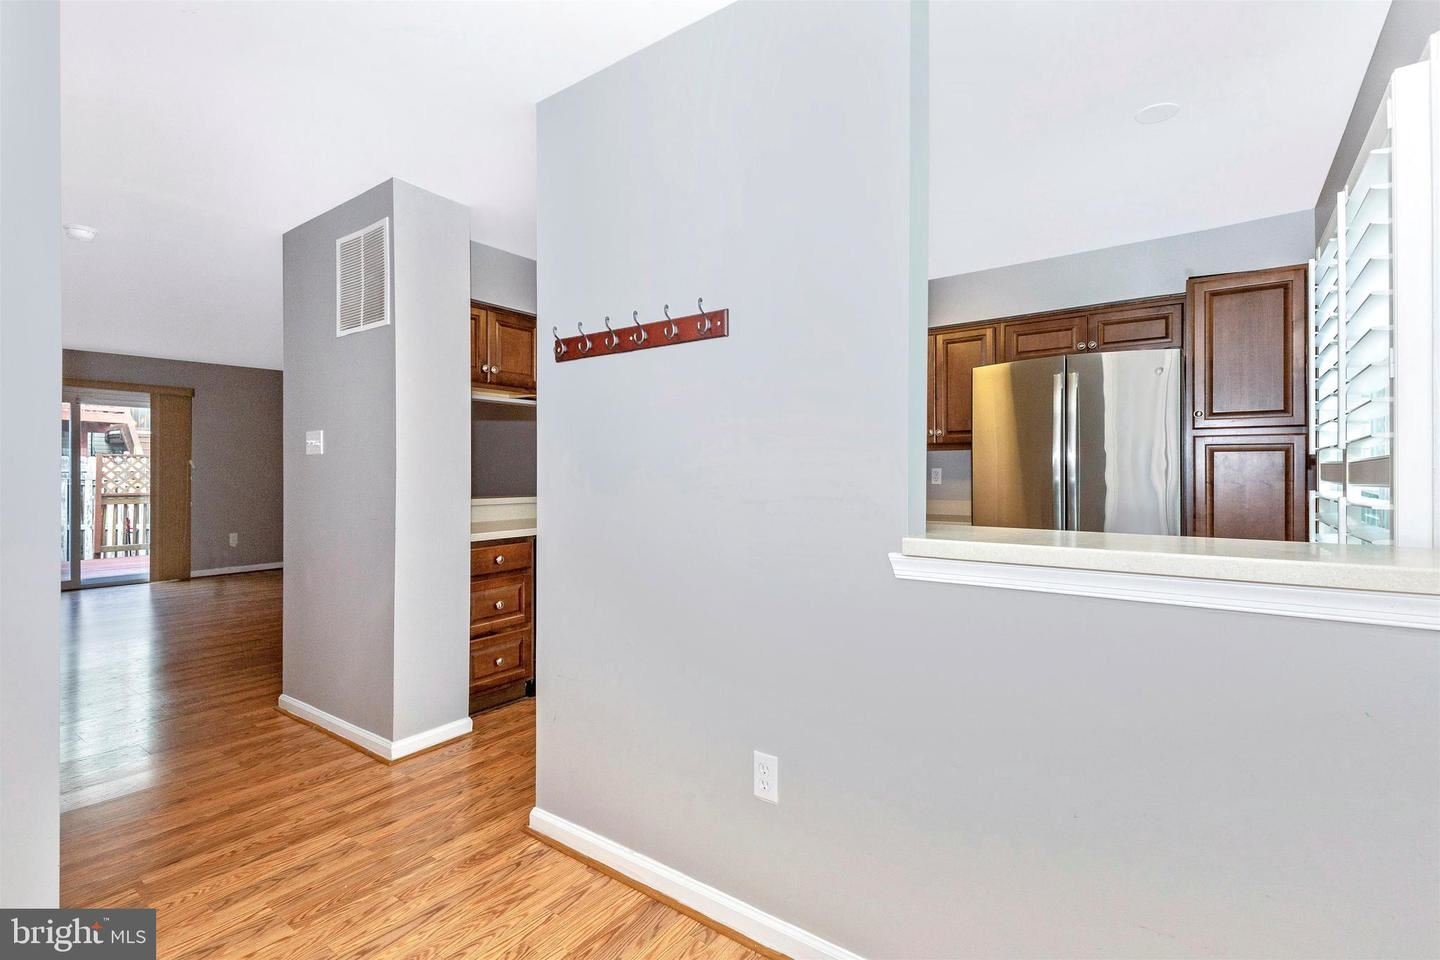 Photo of 20021 APPERSON PL, GERMANTOWN, MD 20876 (MLS # MDMC735818)